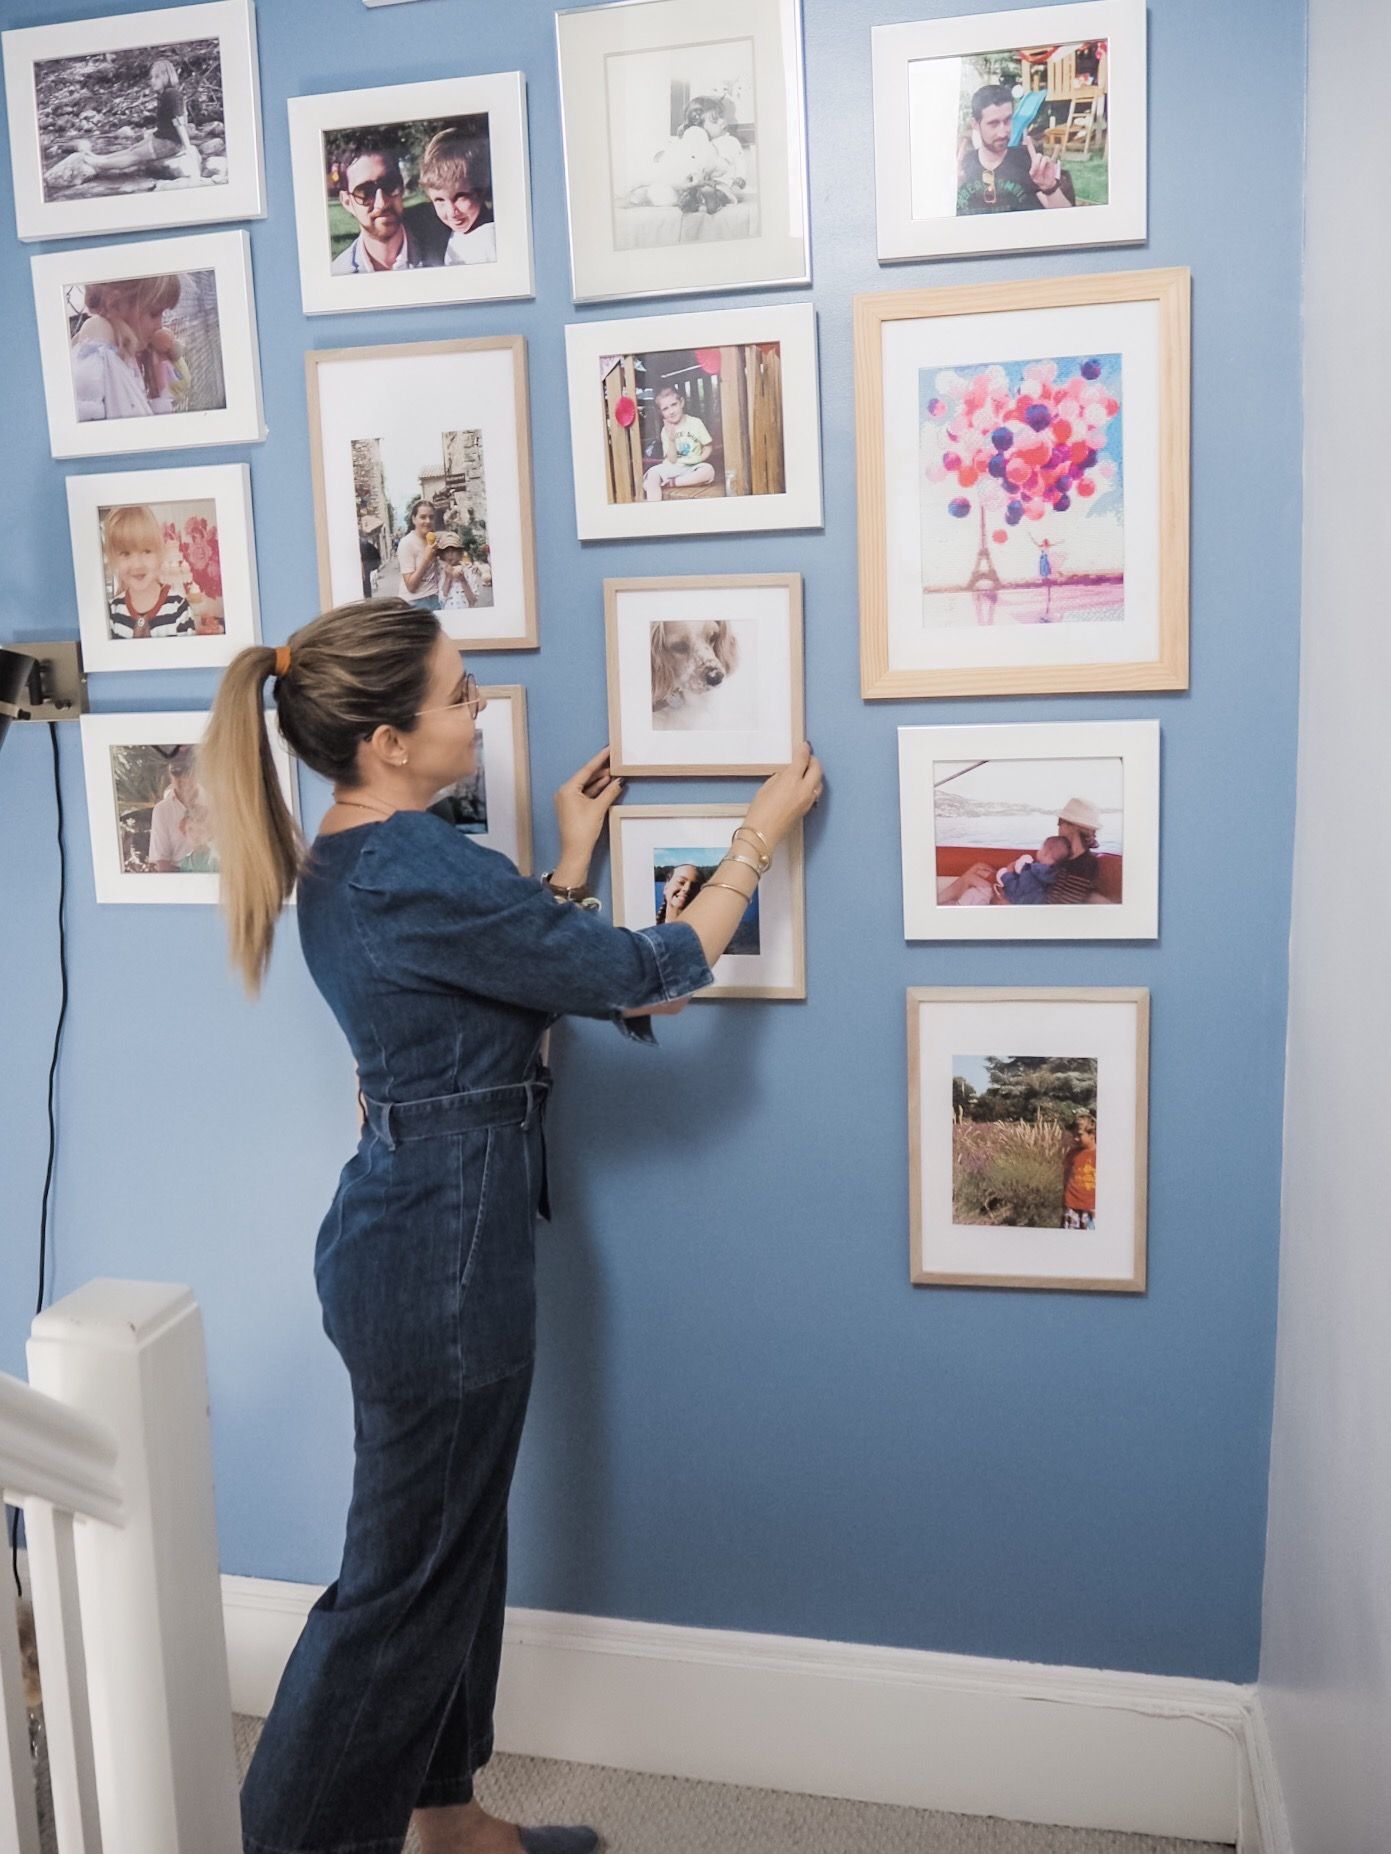 Weekend Makeover With Behr Paint Our Upstairs Wall Of Fame Behr Color Trends Behr Colors Behr Paint Colors [ 1854 x 1391 Pixel ]